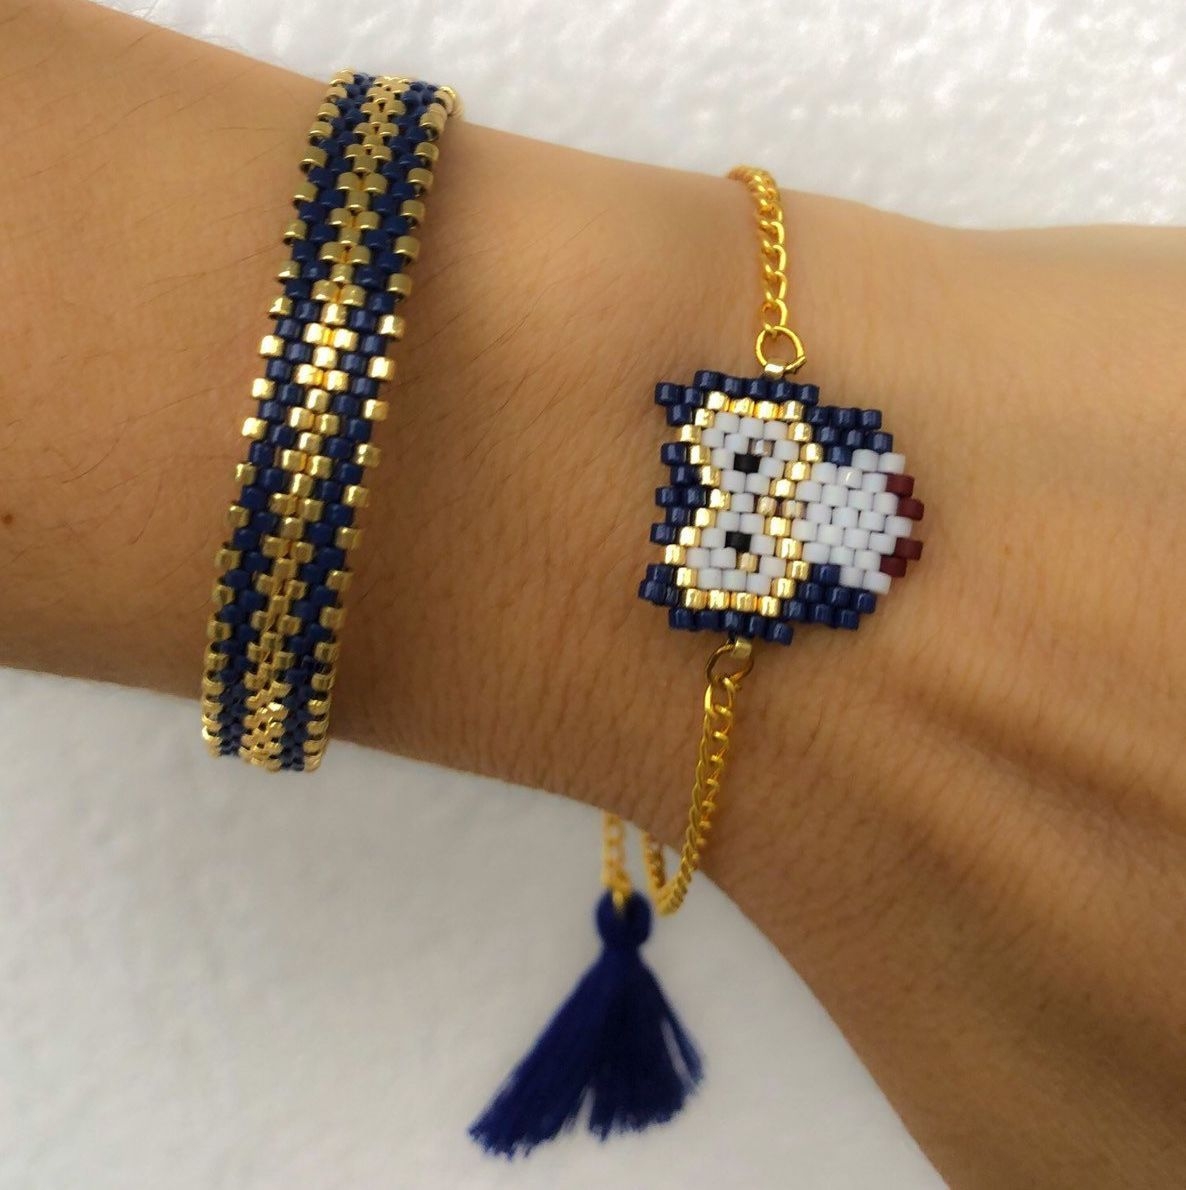 Miyuki beaded blue owl bracelet set, unique, stylish, chic bracelet for women, girls - #beaded #Blue #Bracelet #Chic #for #Girls #Miyuki #Owl #set #Stylish #Unique #Women